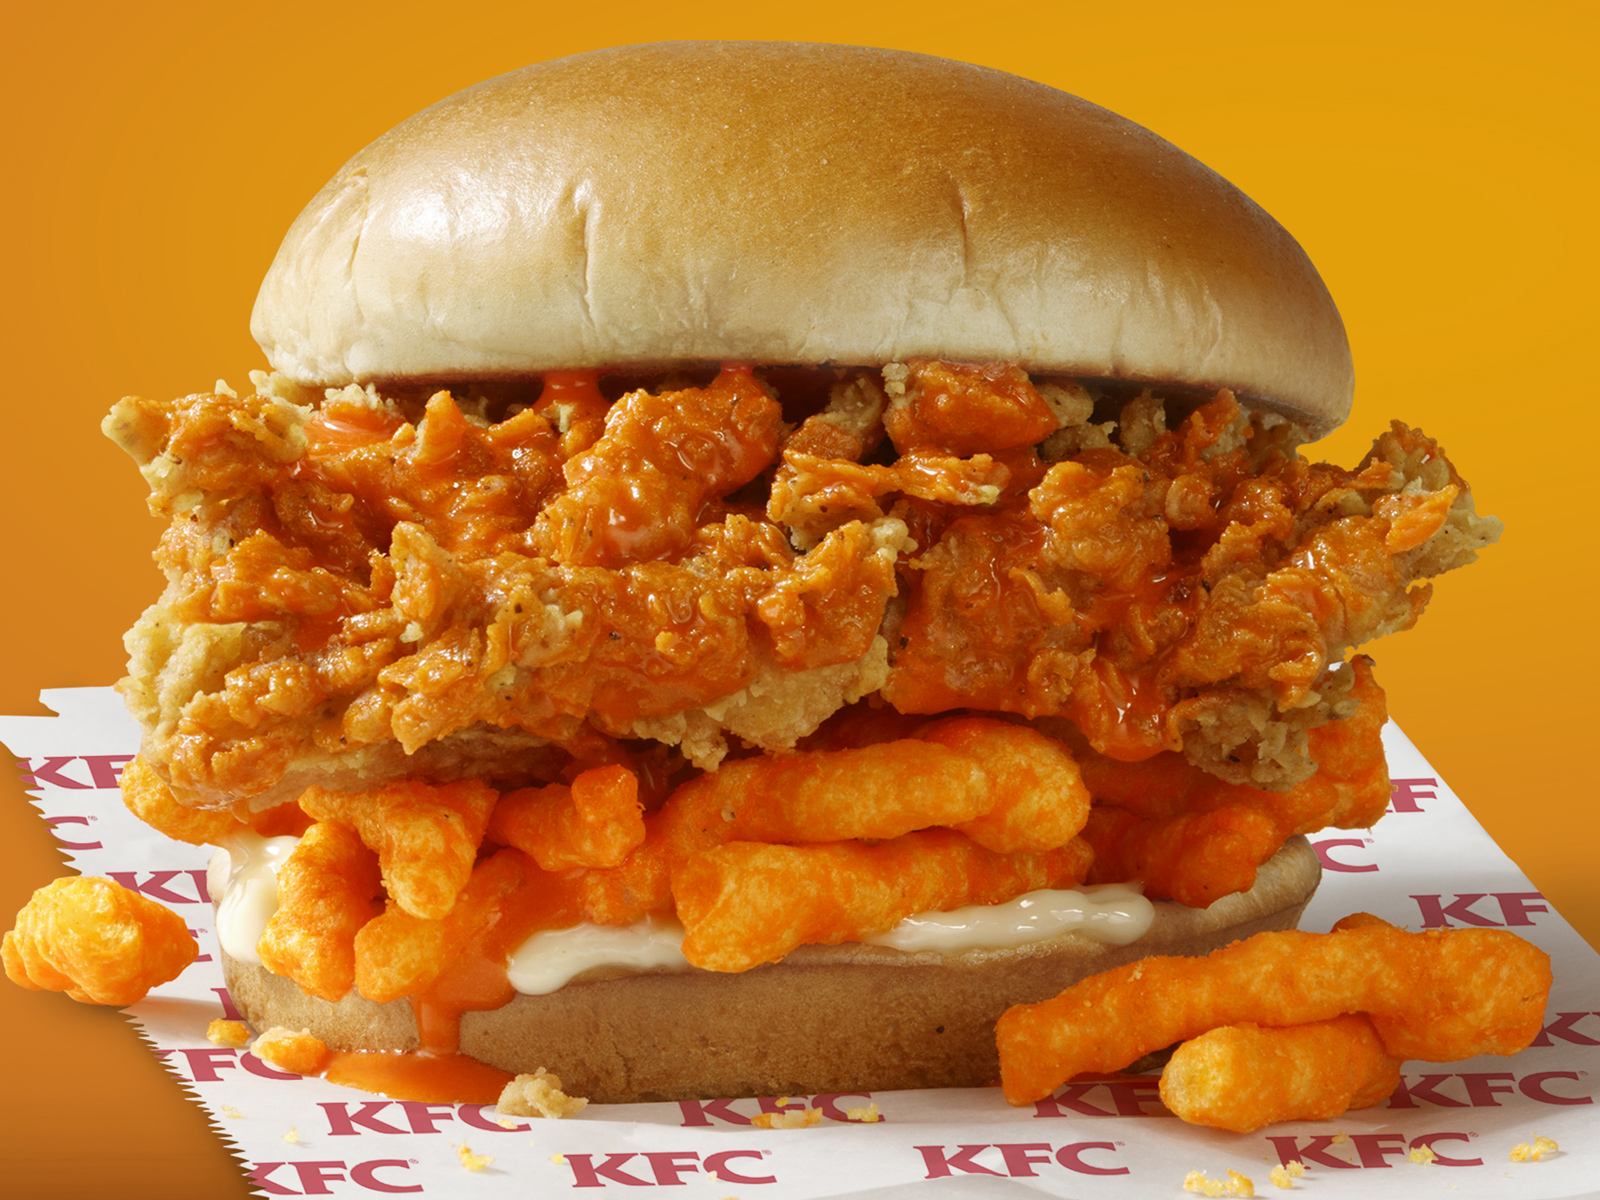 KFC's Cheetos Sandwich Goes Nationwide — Here's What We Thought of It